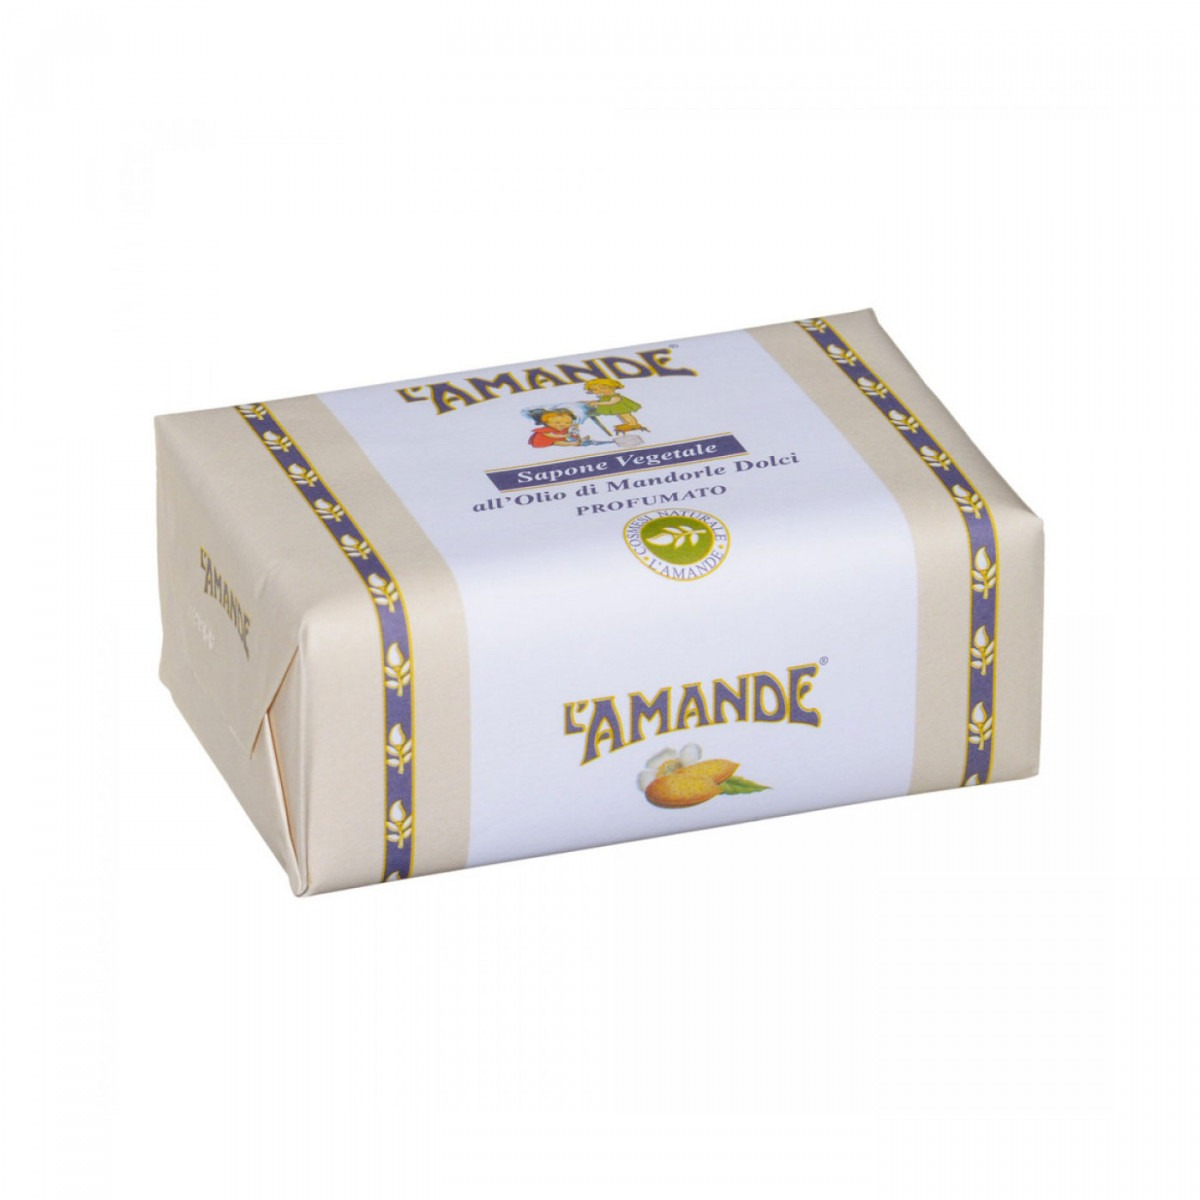 L'Amande almond soap bar 200g